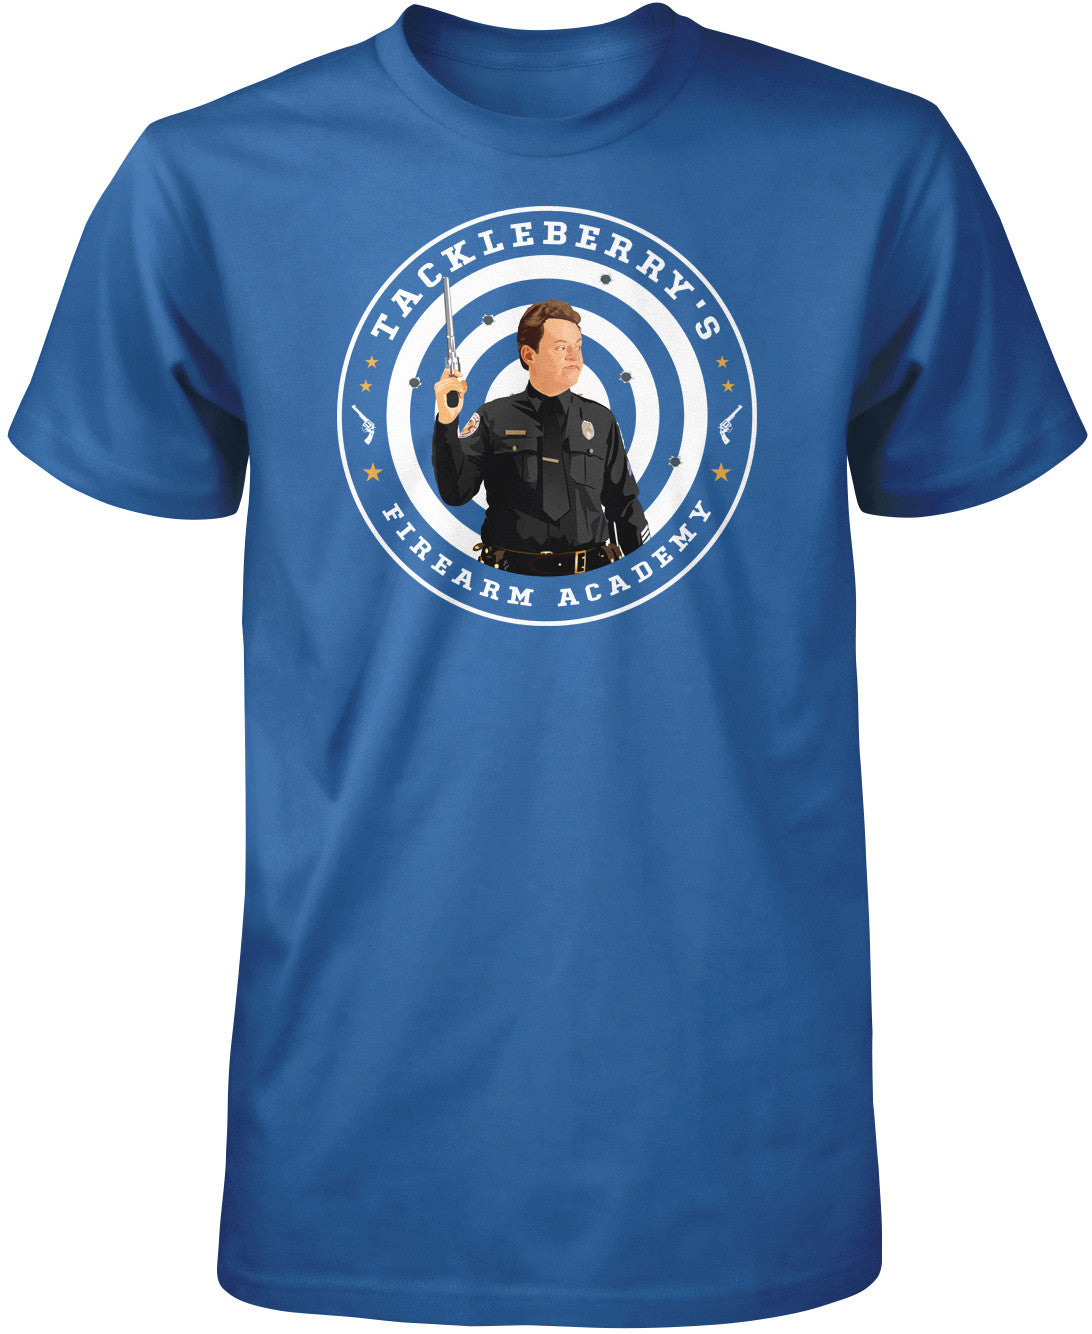 Tackleberry's Firearm Academy T-Shirt